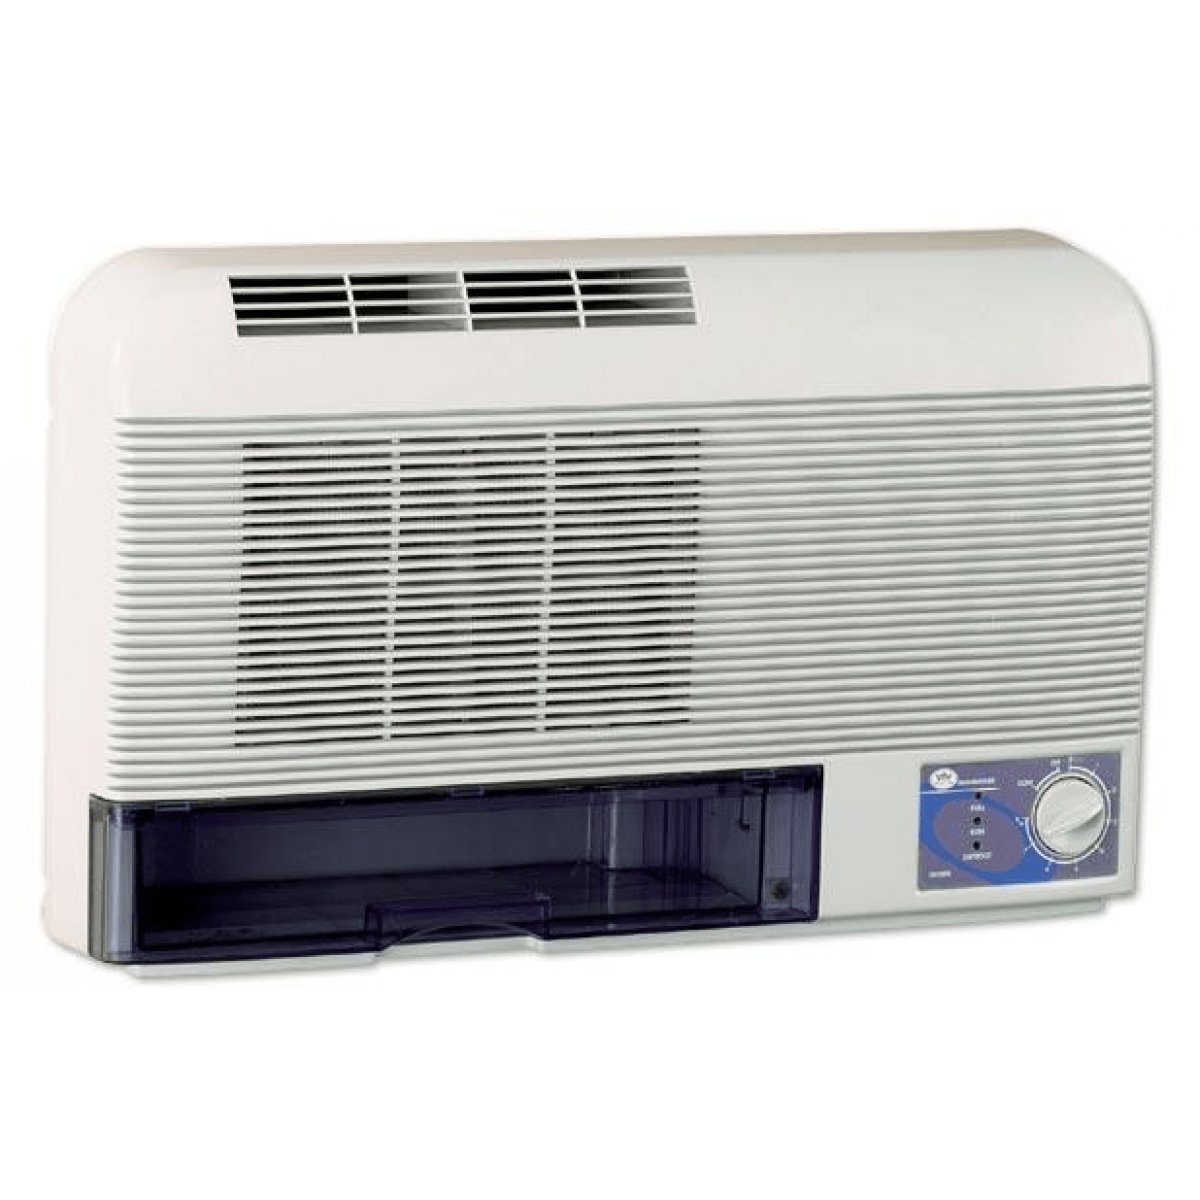 Best Dehumidifier For 3 Bedroom House Buyloxitane Com With Pictures